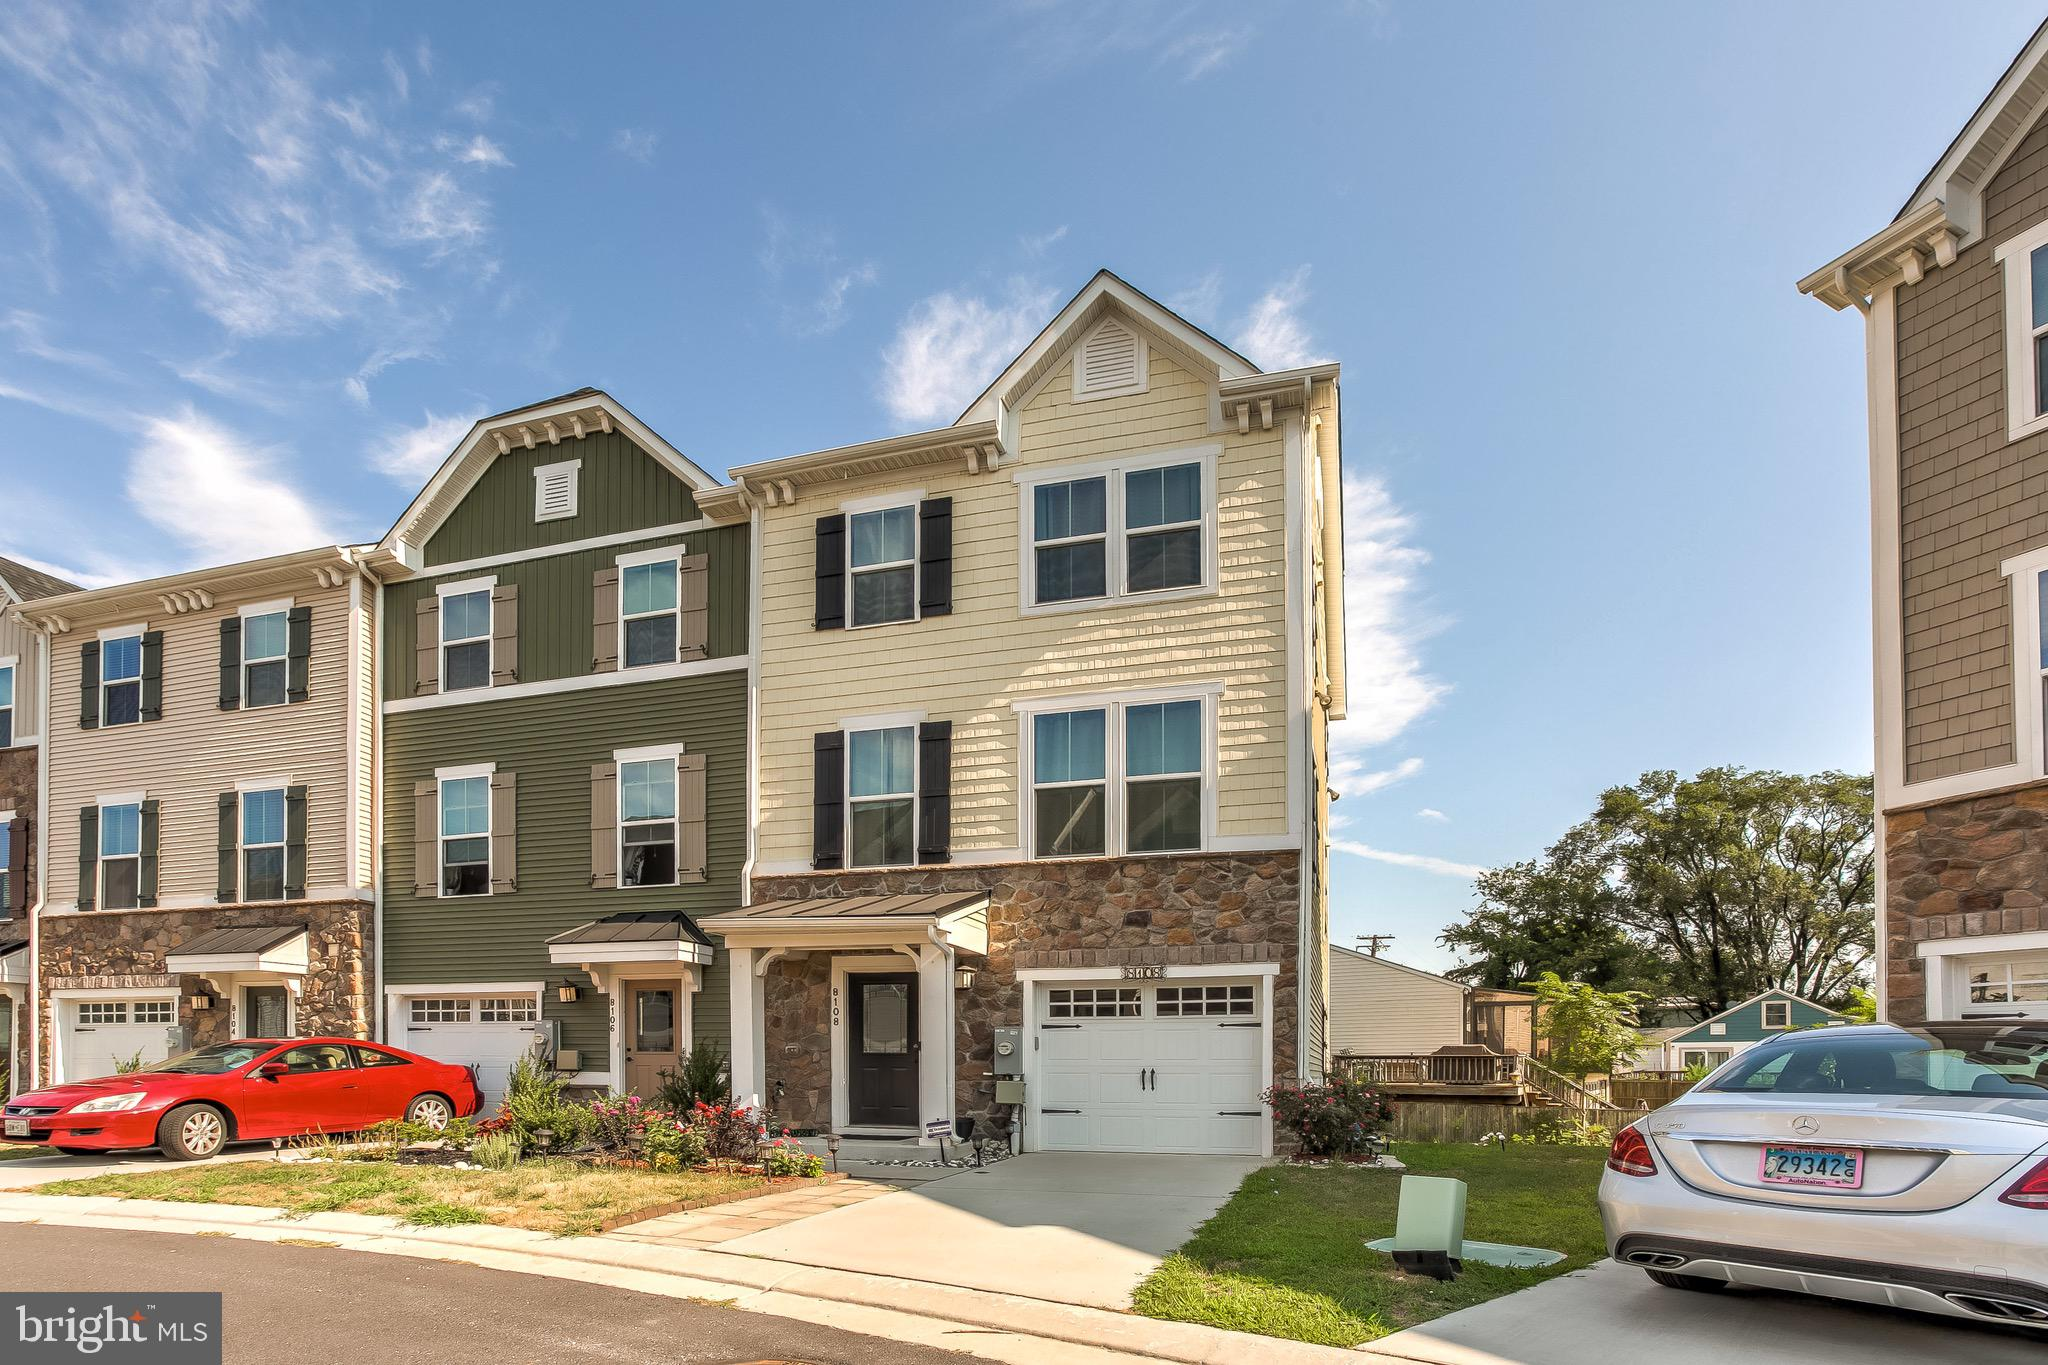 8108 SECLUDED COVE LANE, BALTIMORE, MD 21222